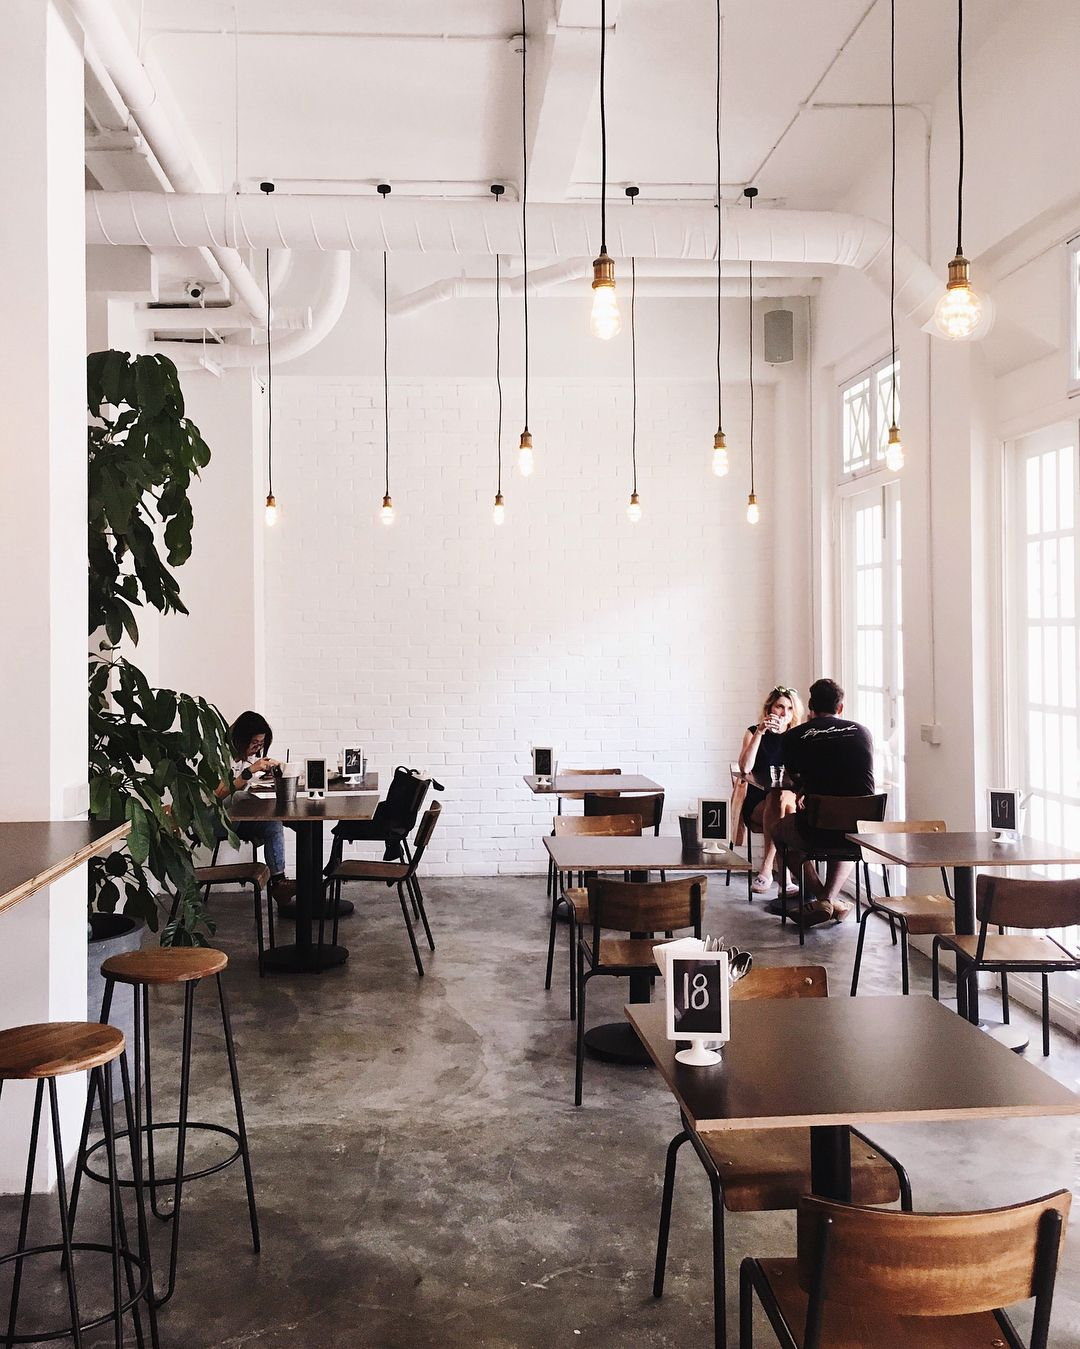 10 Beautiful Cafes In Singapore For That Instagrammable Aesthetic In 2019 Eatbook Sg Coffee Shops Interior Cafe Interior Design Restaurant Interior Design